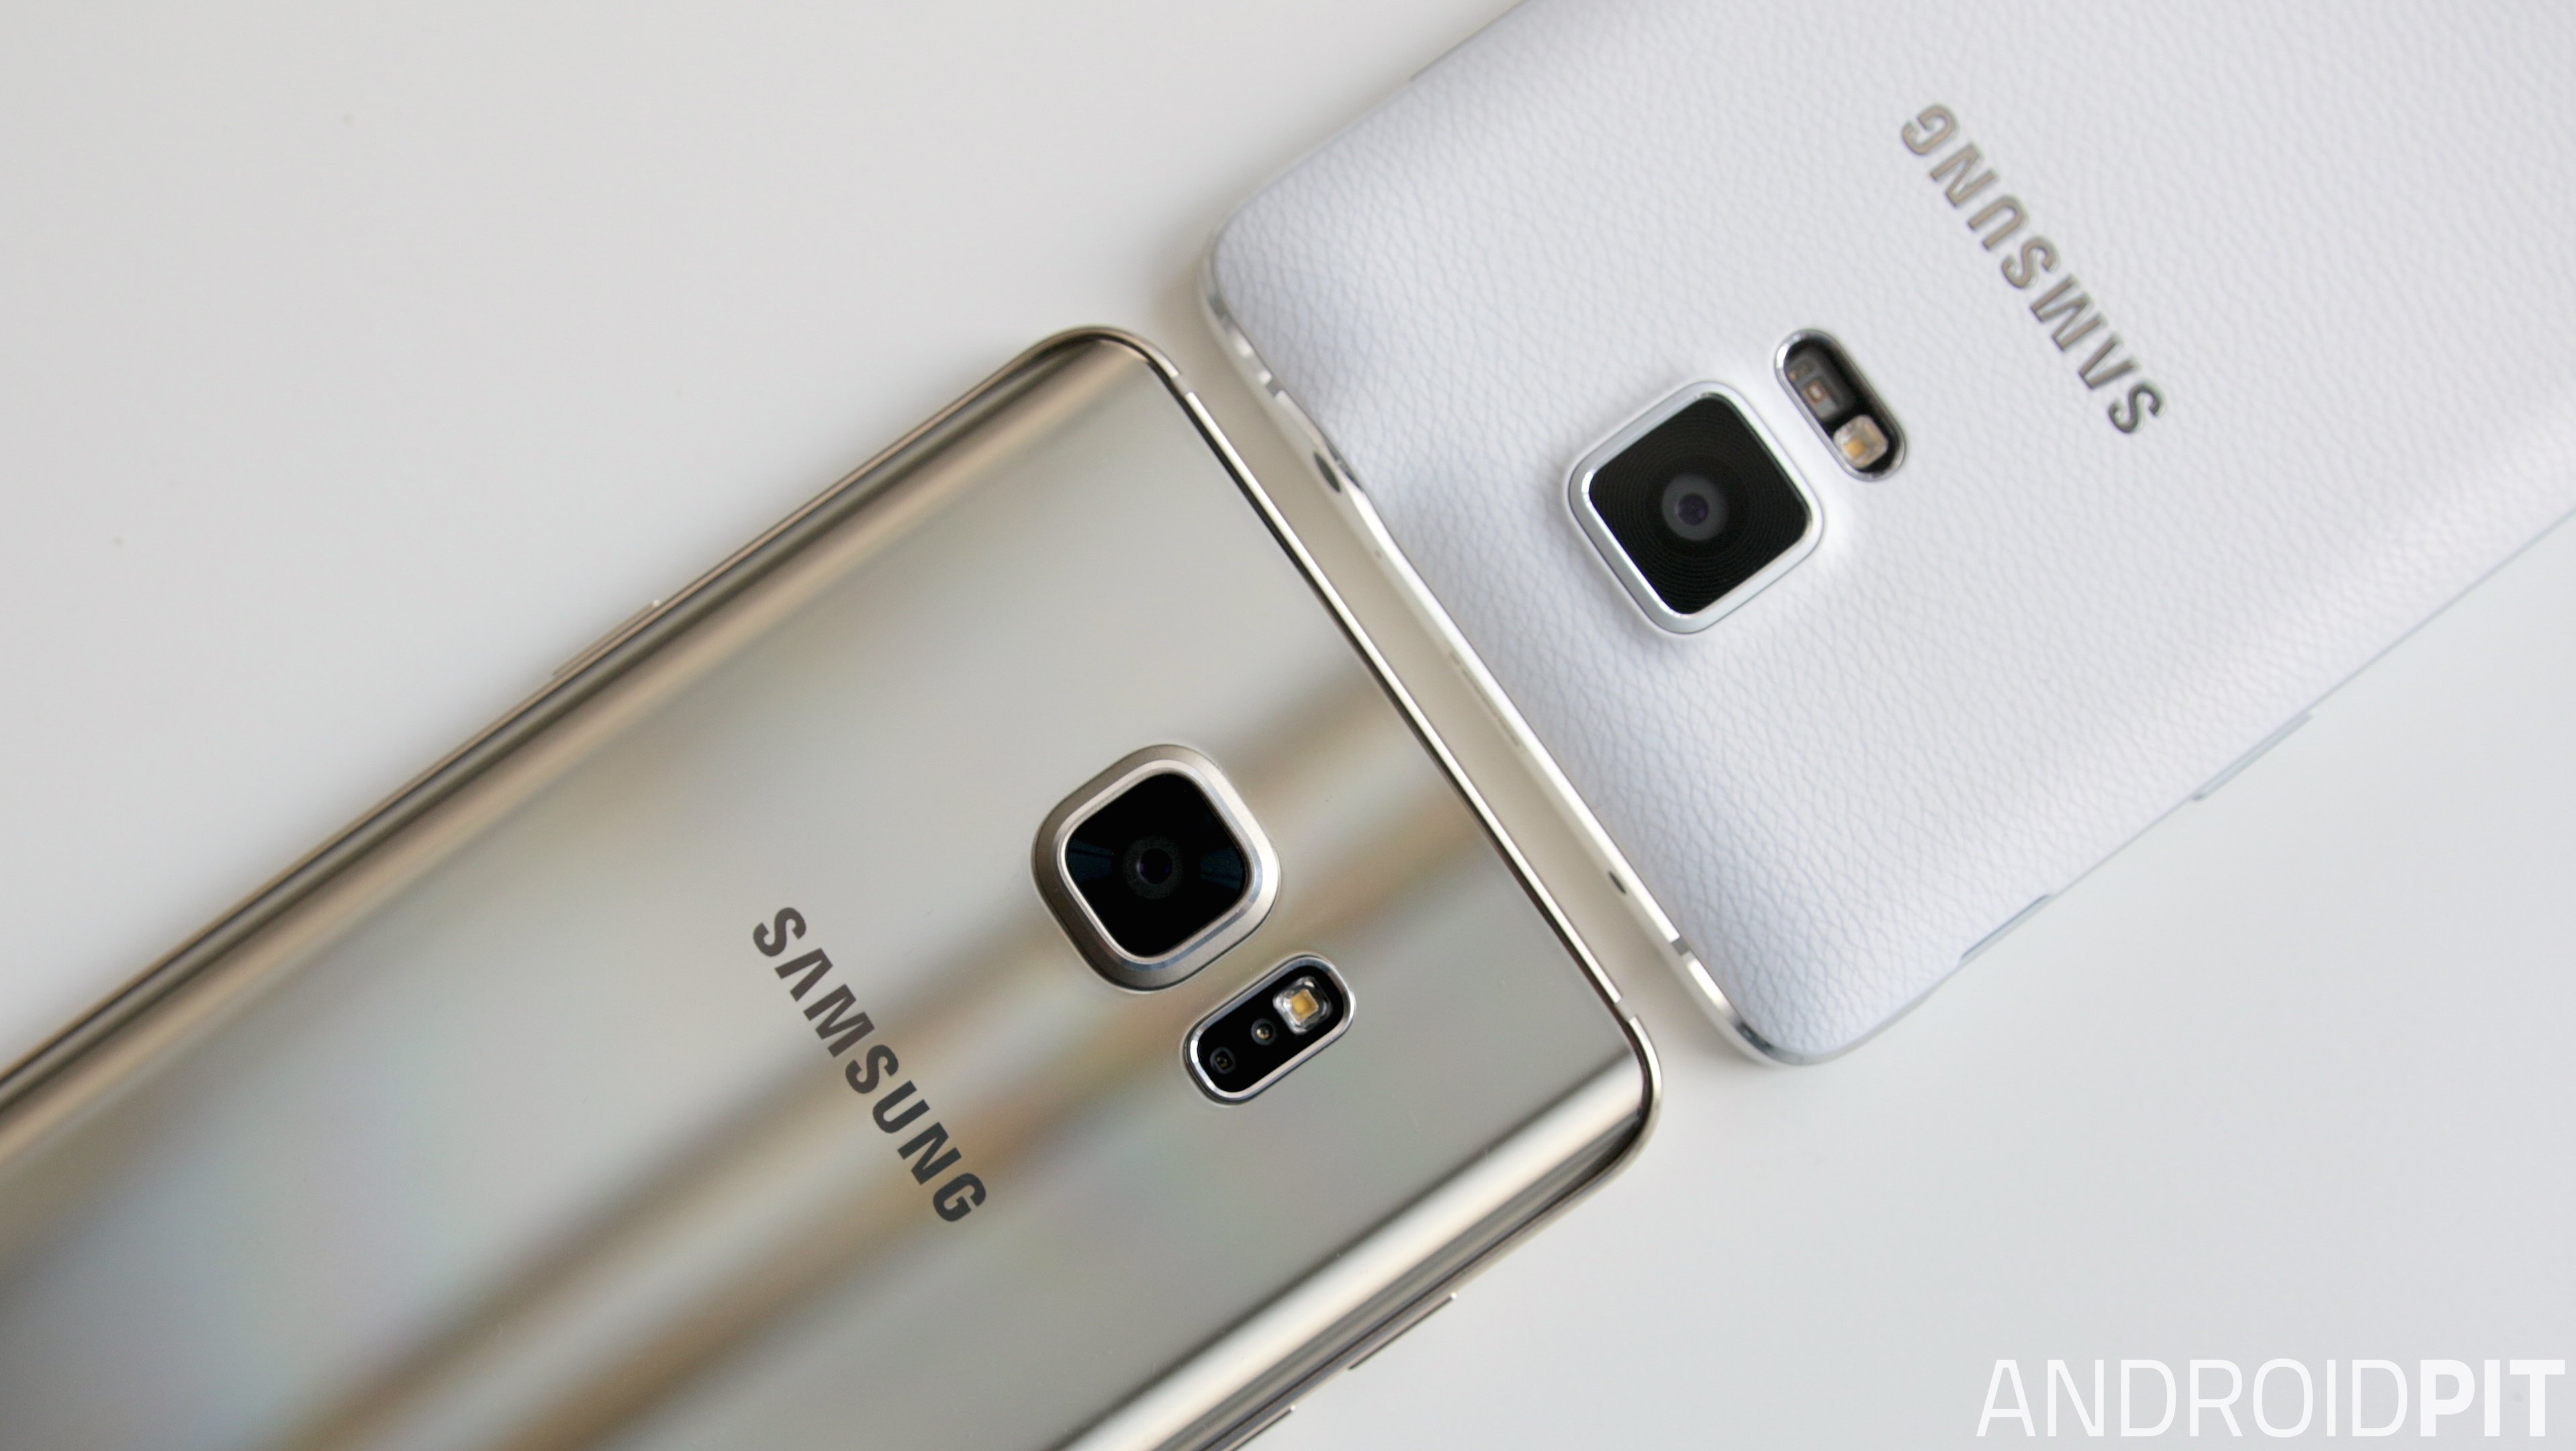 Galaxy Note 5 Vs 4 Comparison Notably Different